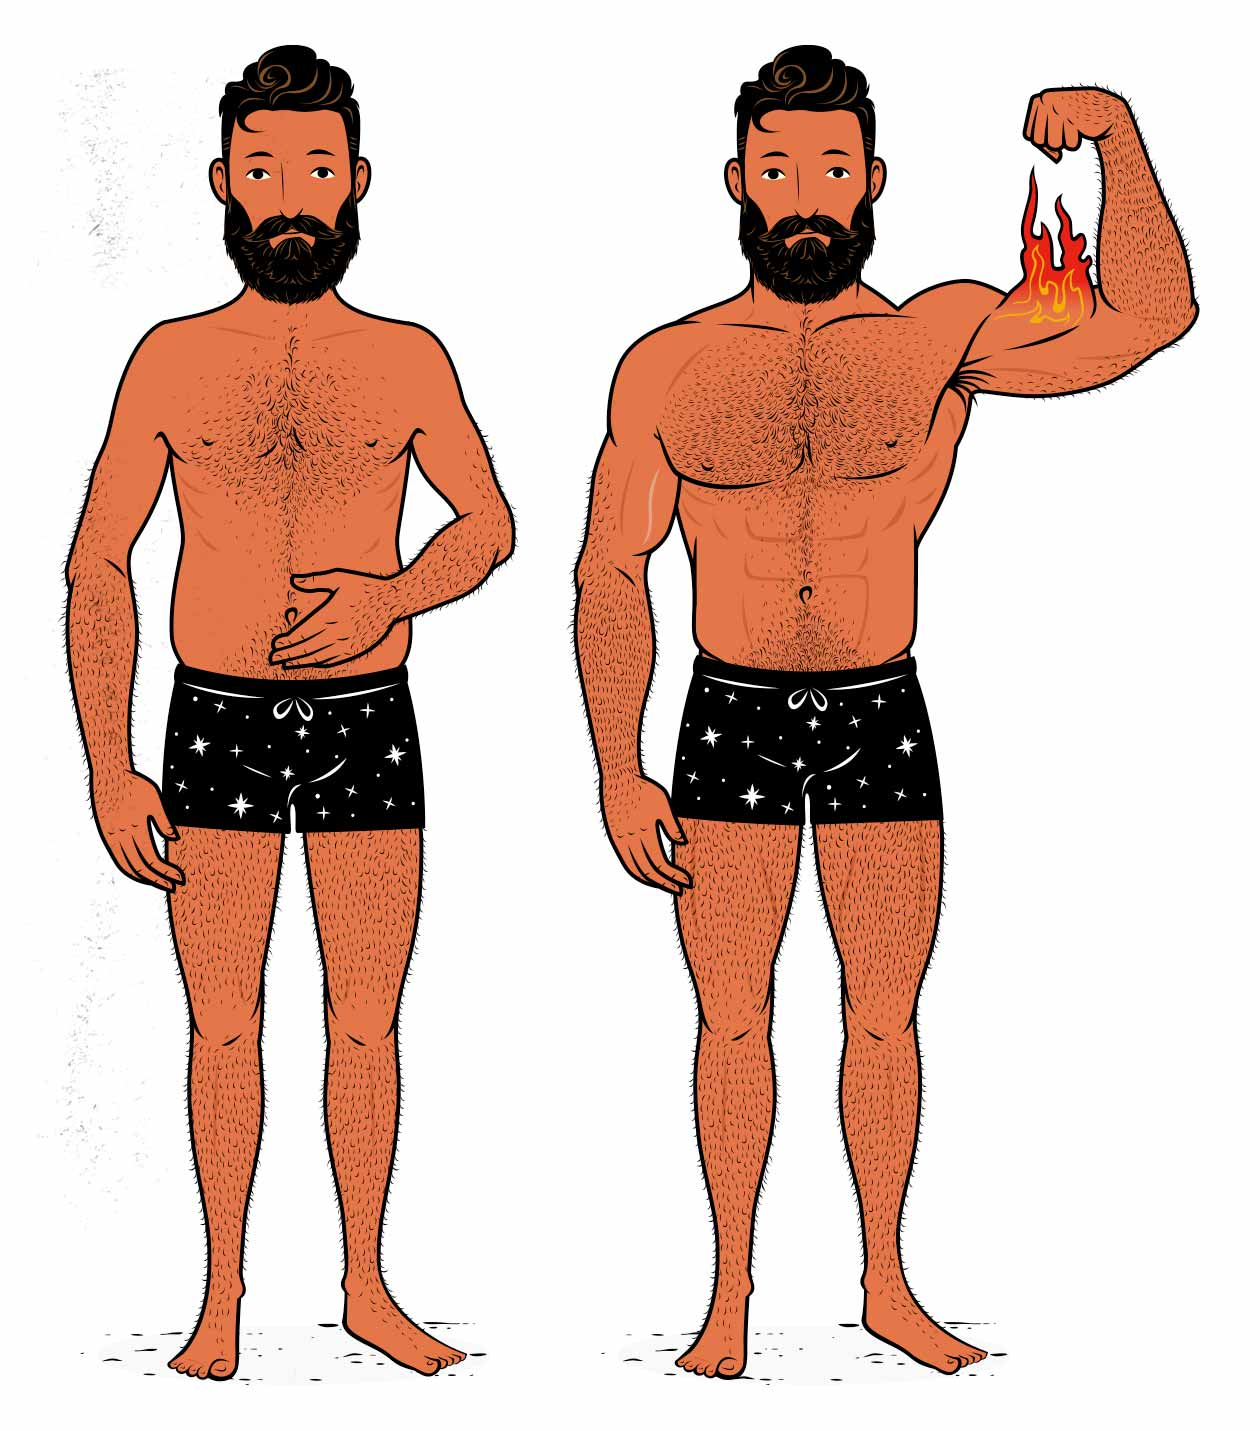 Outlift illustration showing the before and after results of a skinny-fat guy building muscle.